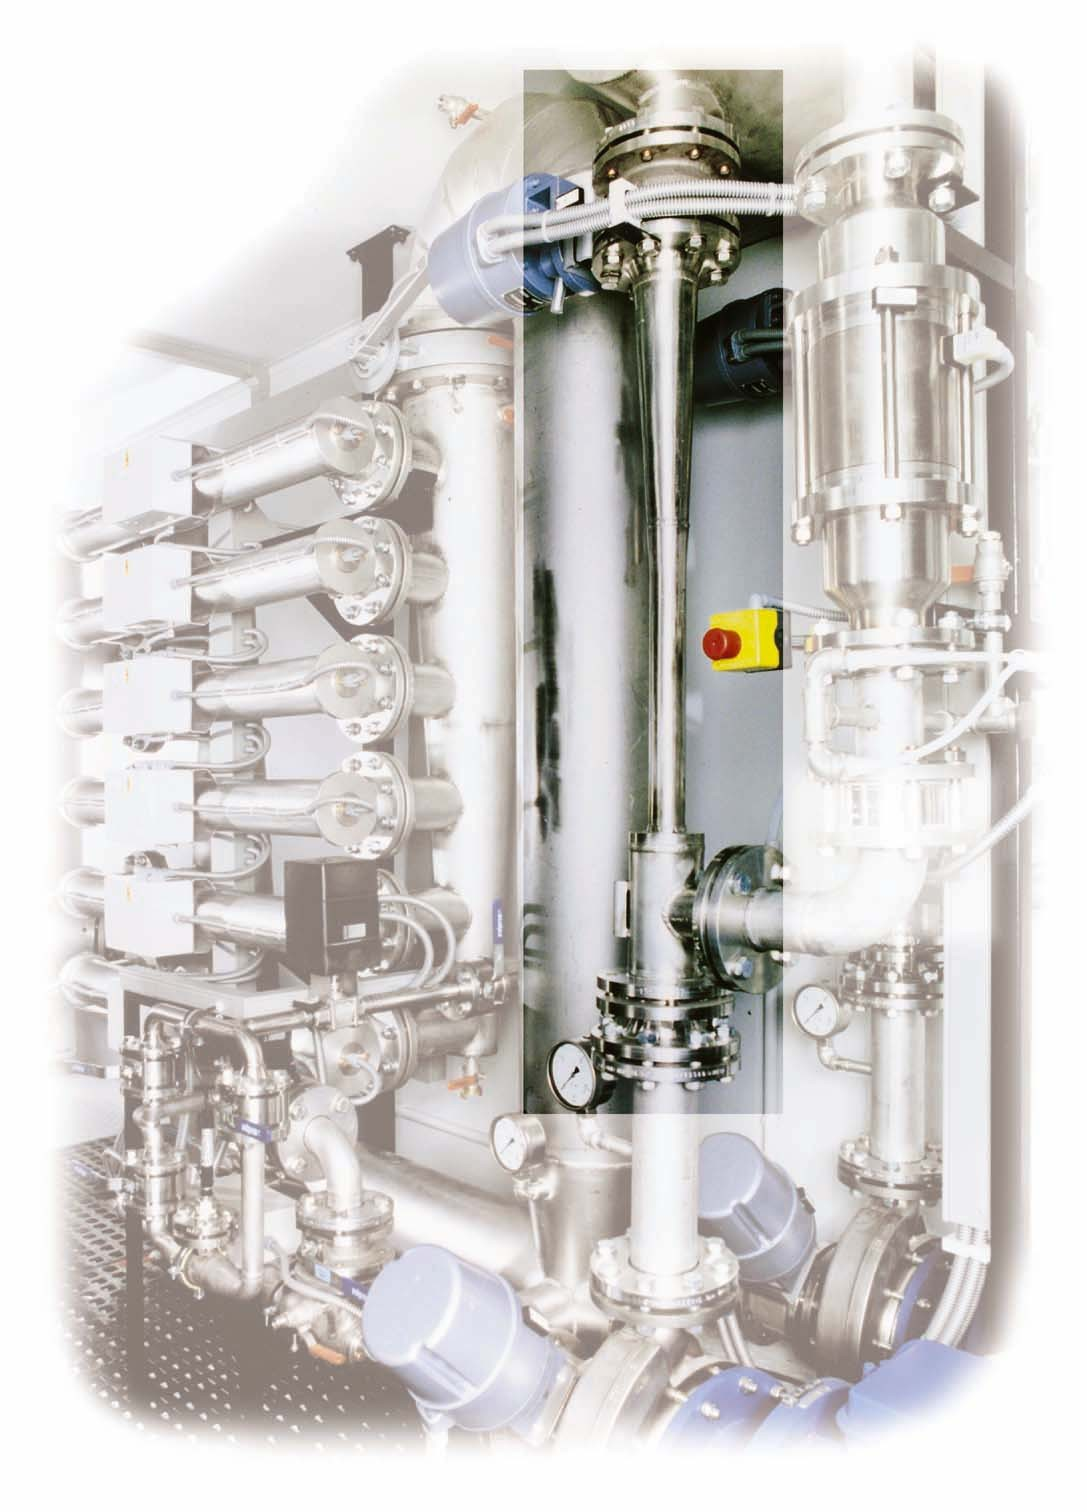 Liquid jet gas compressor installed in a plant